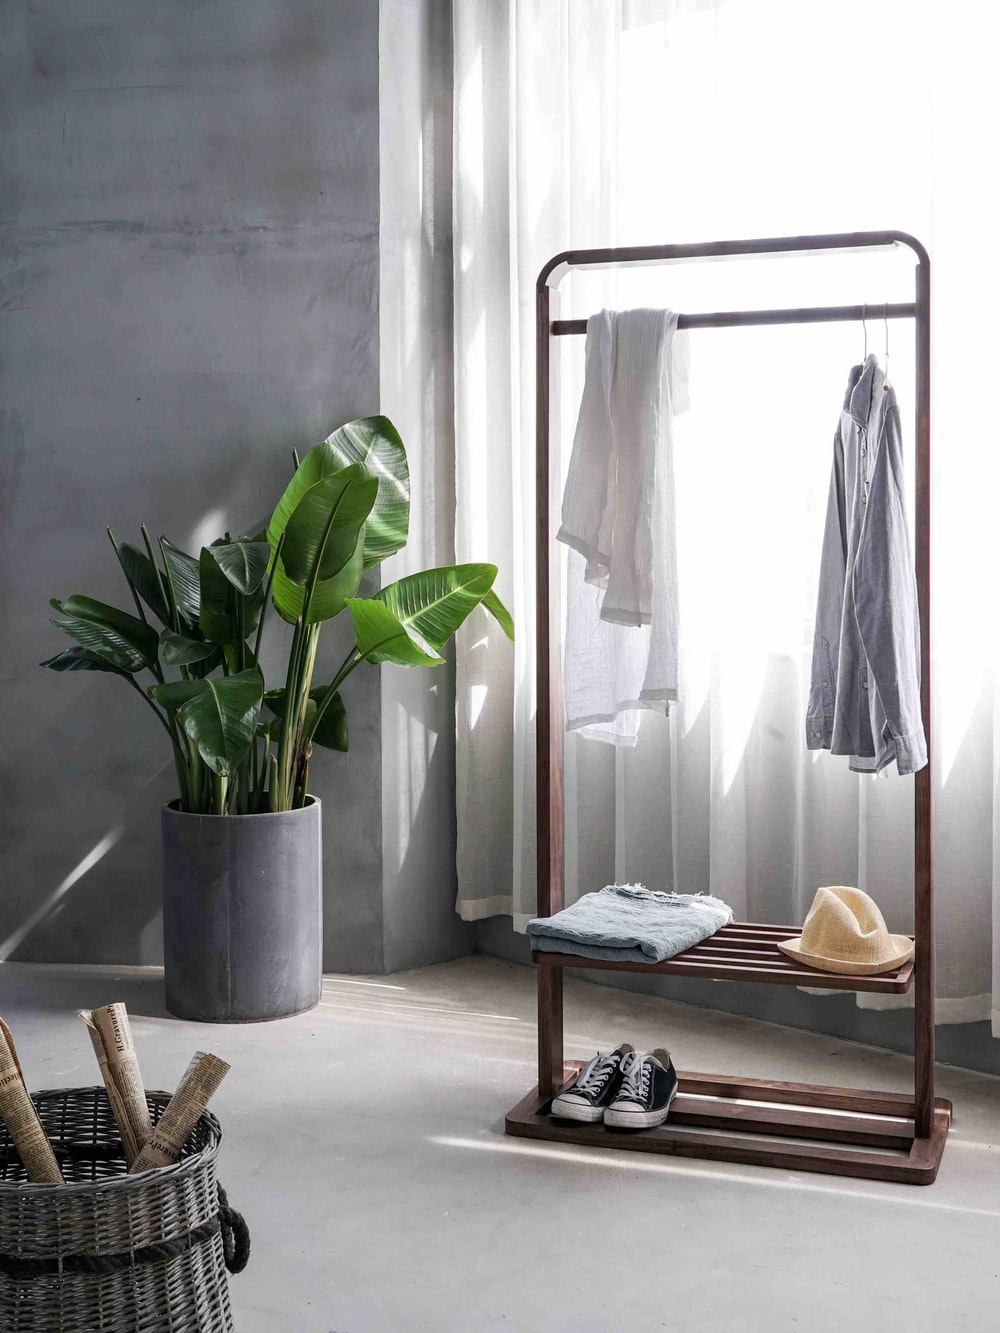 sustainable travel - gray dress shirt hang on brown wooden rack in front of window with white curtain